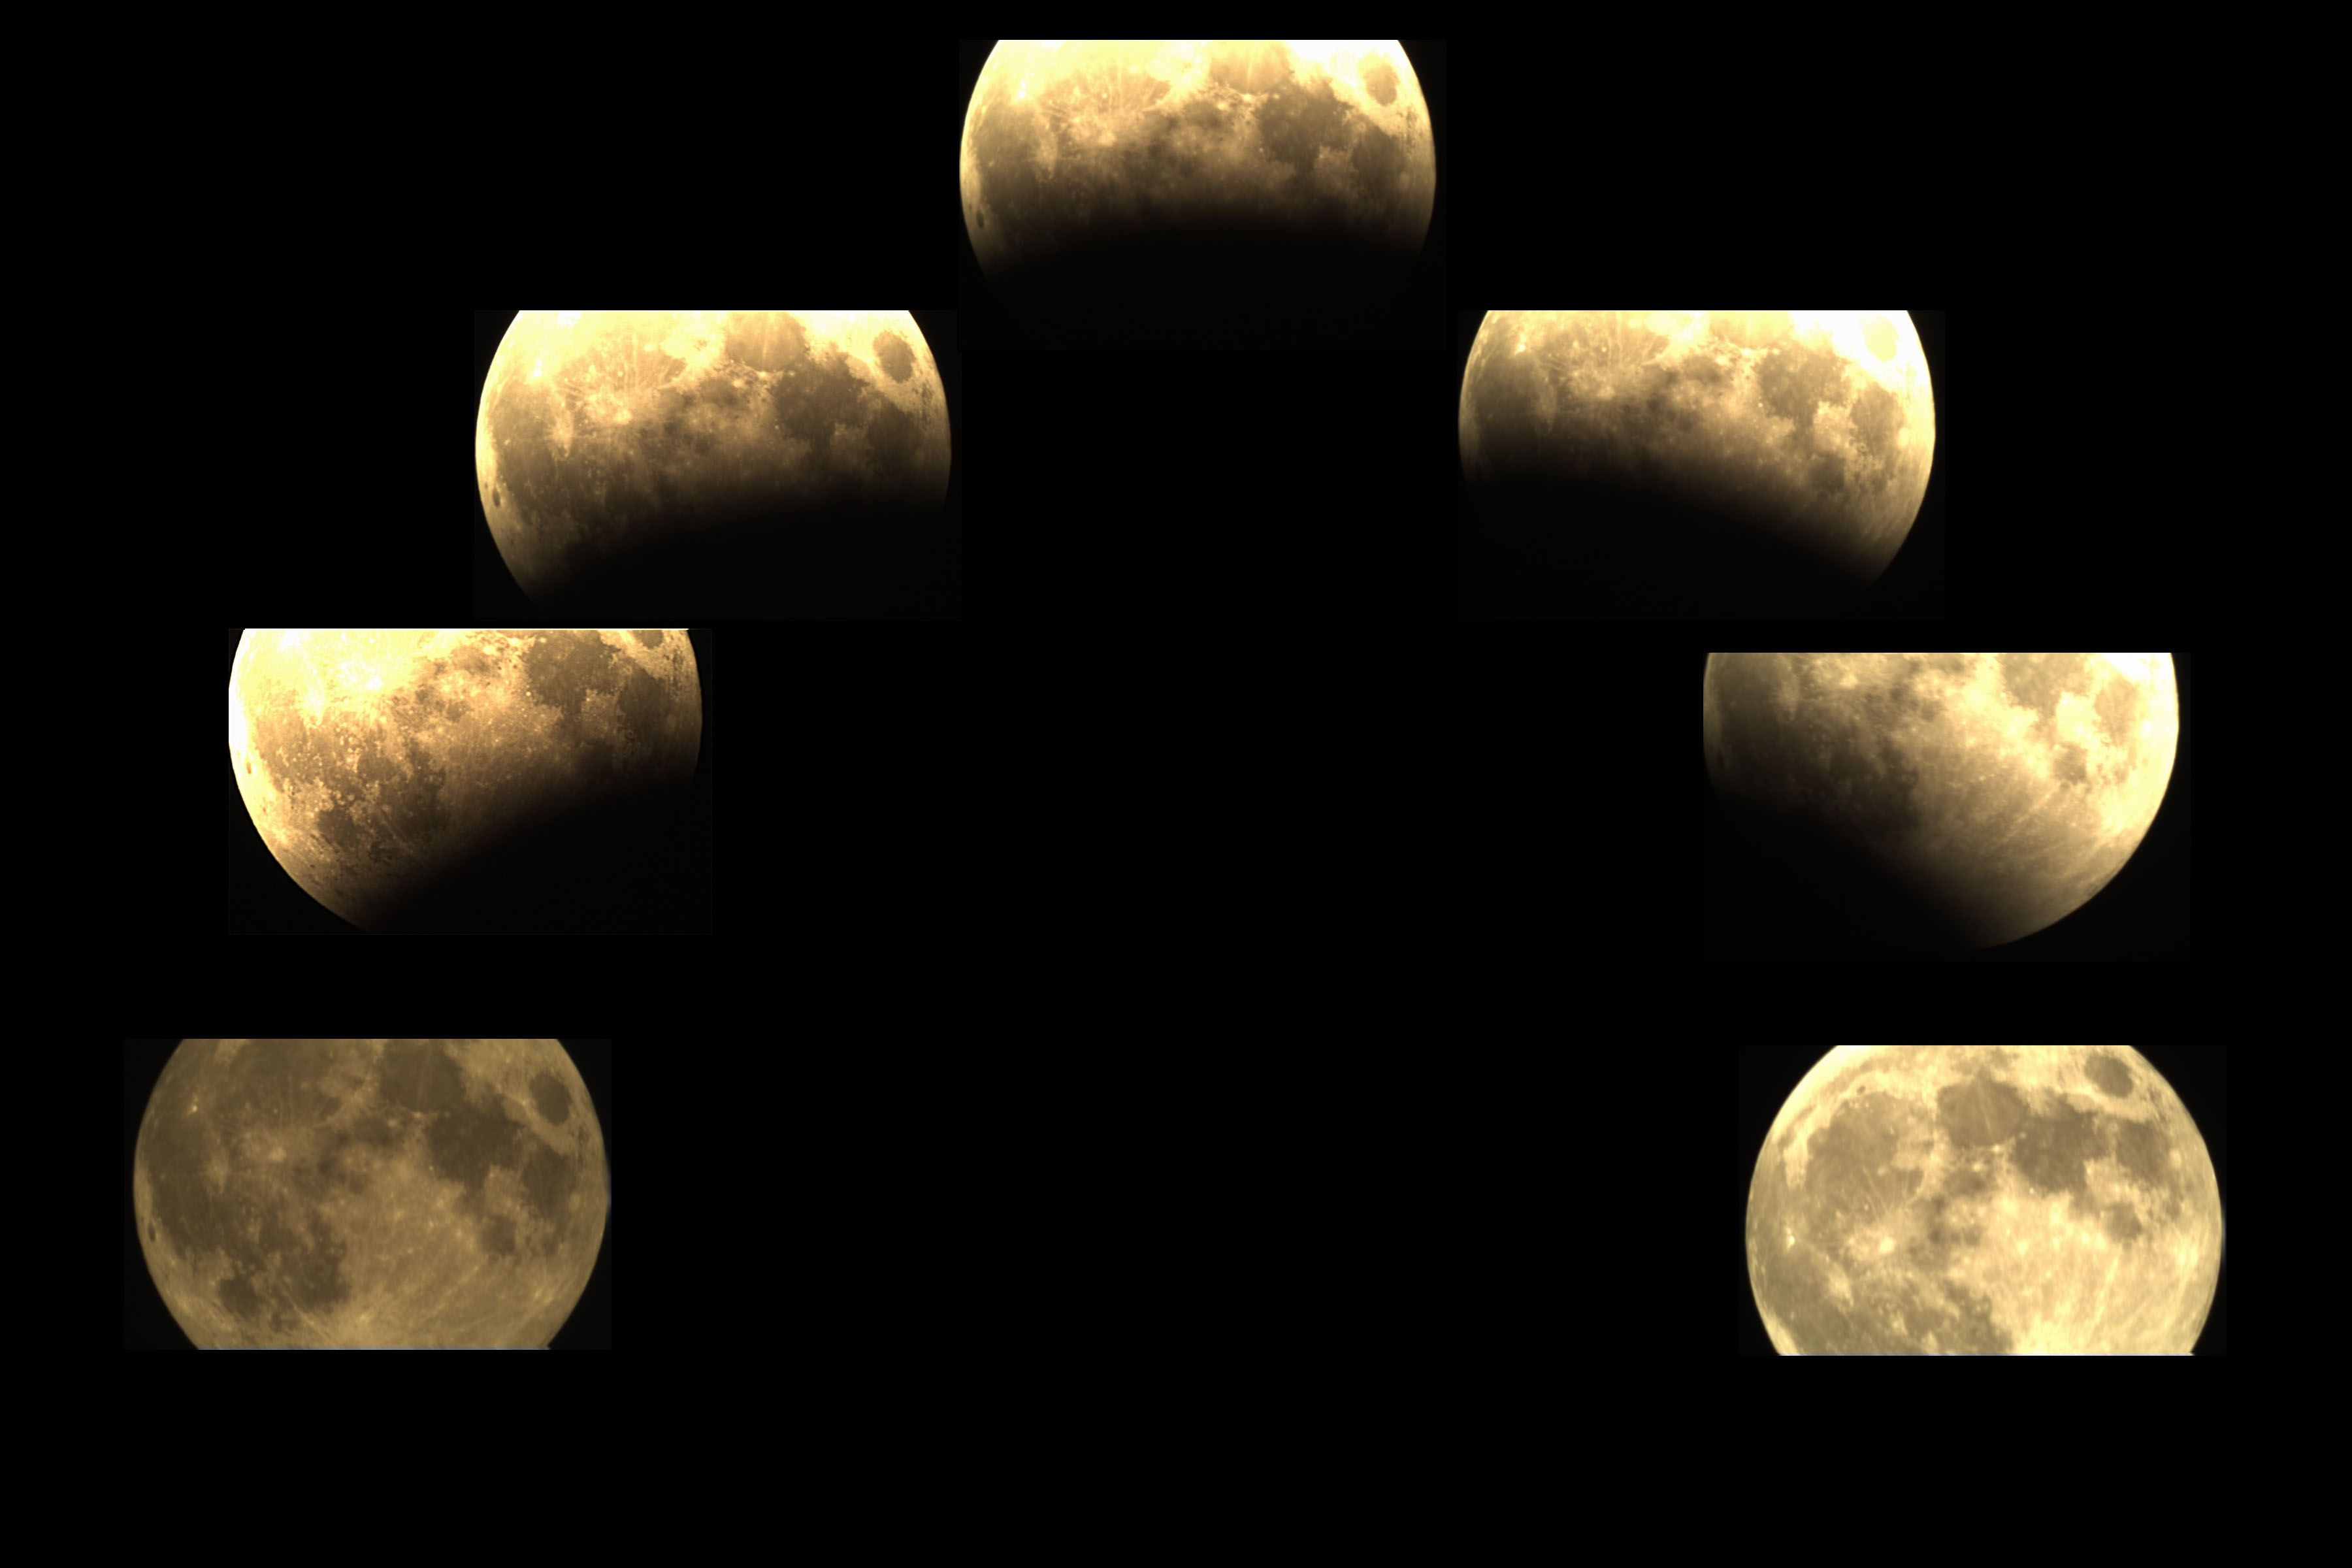 June 4th, 2012 Partial Lunar Eclipse Collage at Orion Store